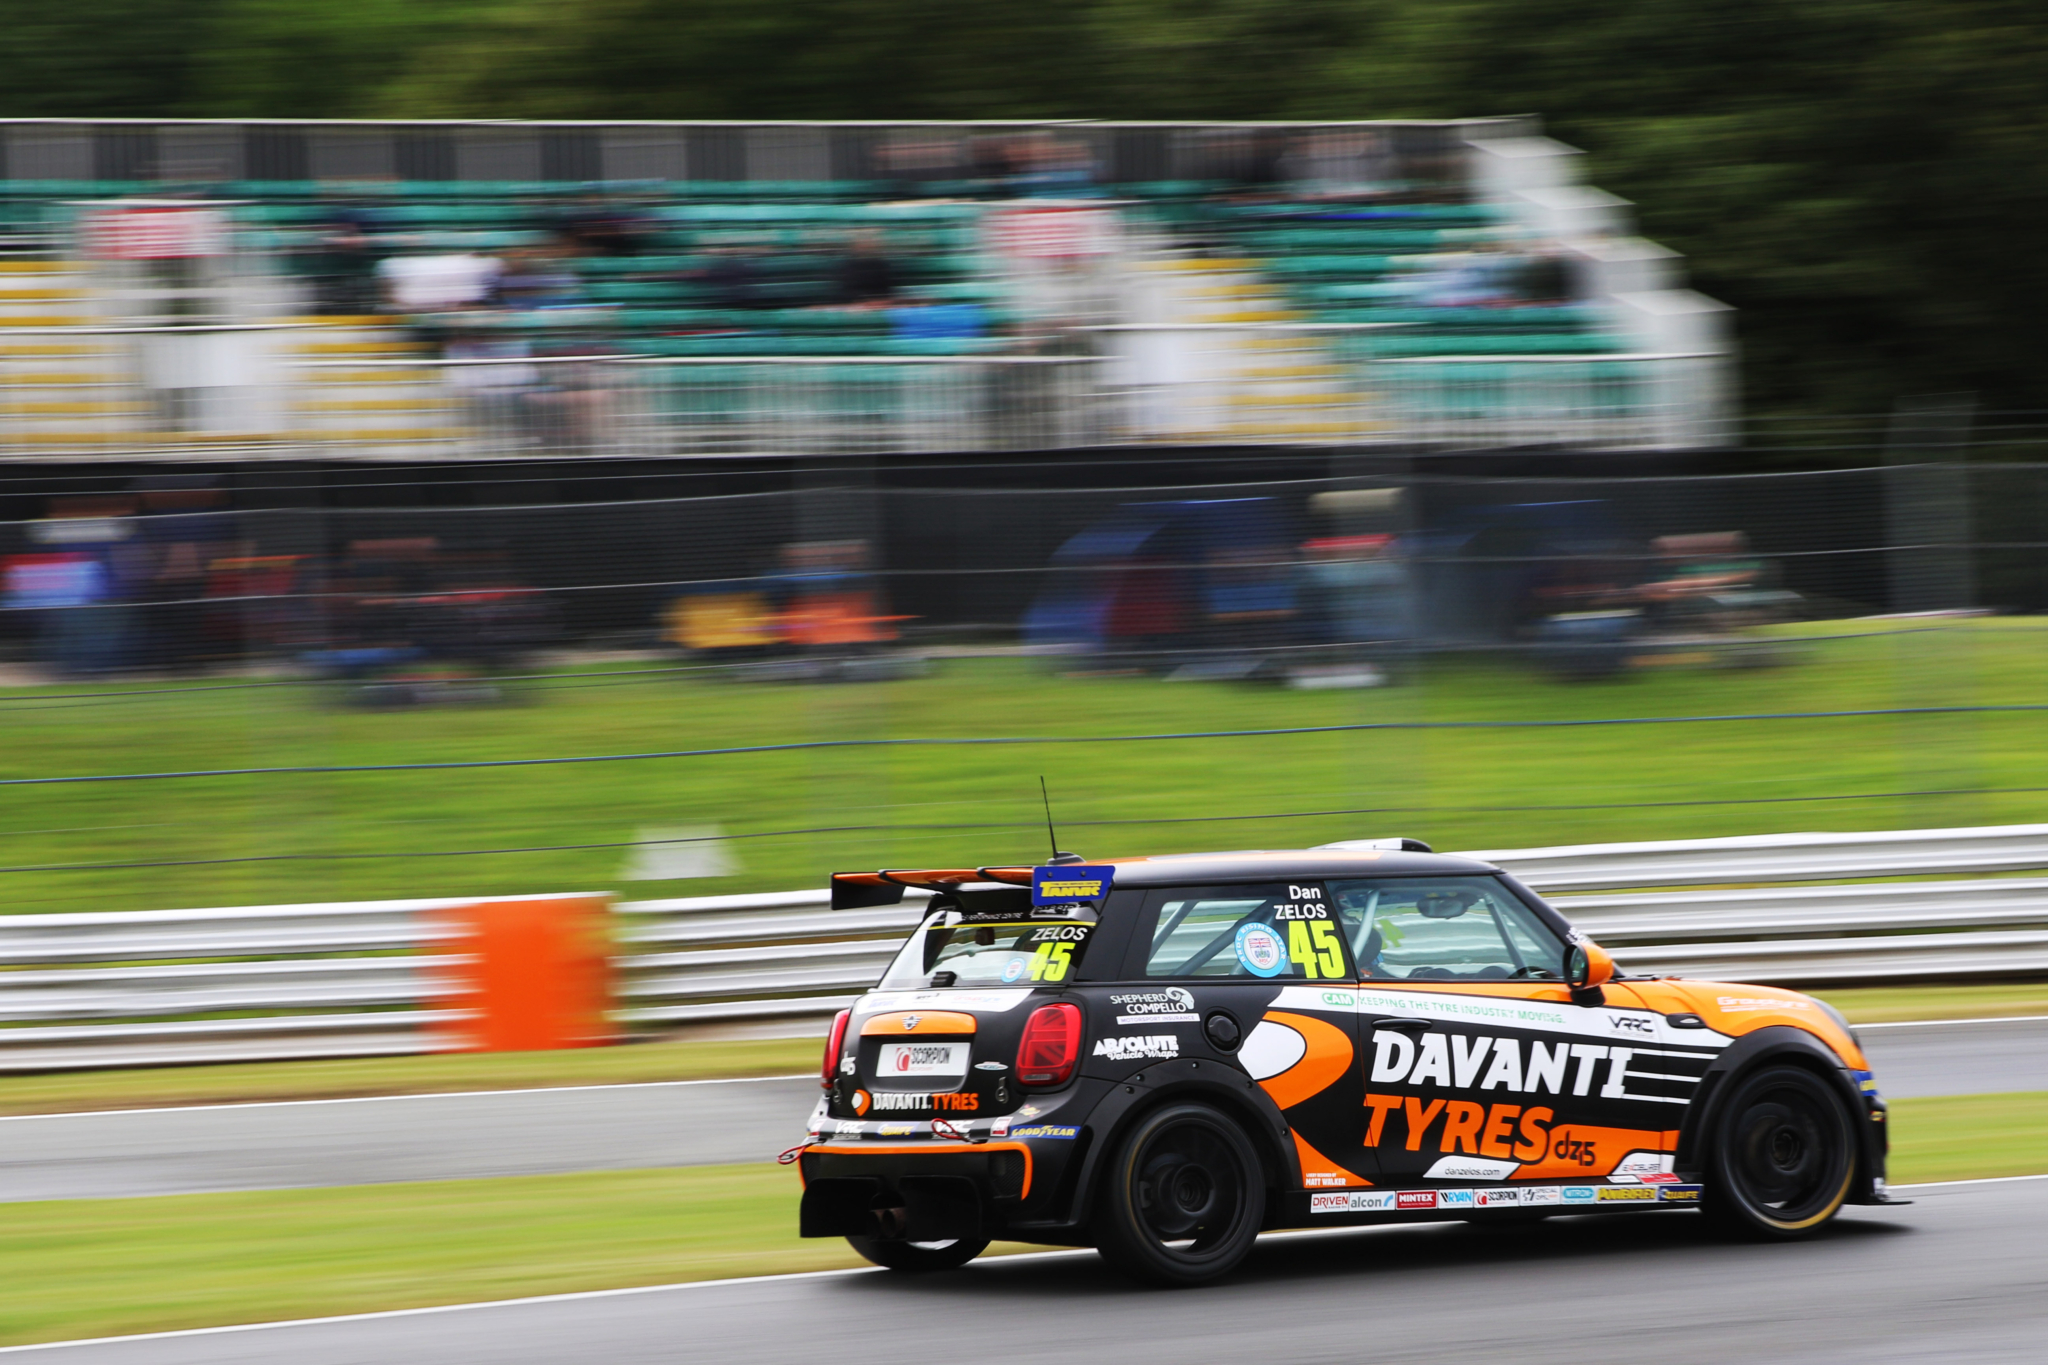 Red flag halts Davanti Tyres-backed Zelos charge at Oulton Park